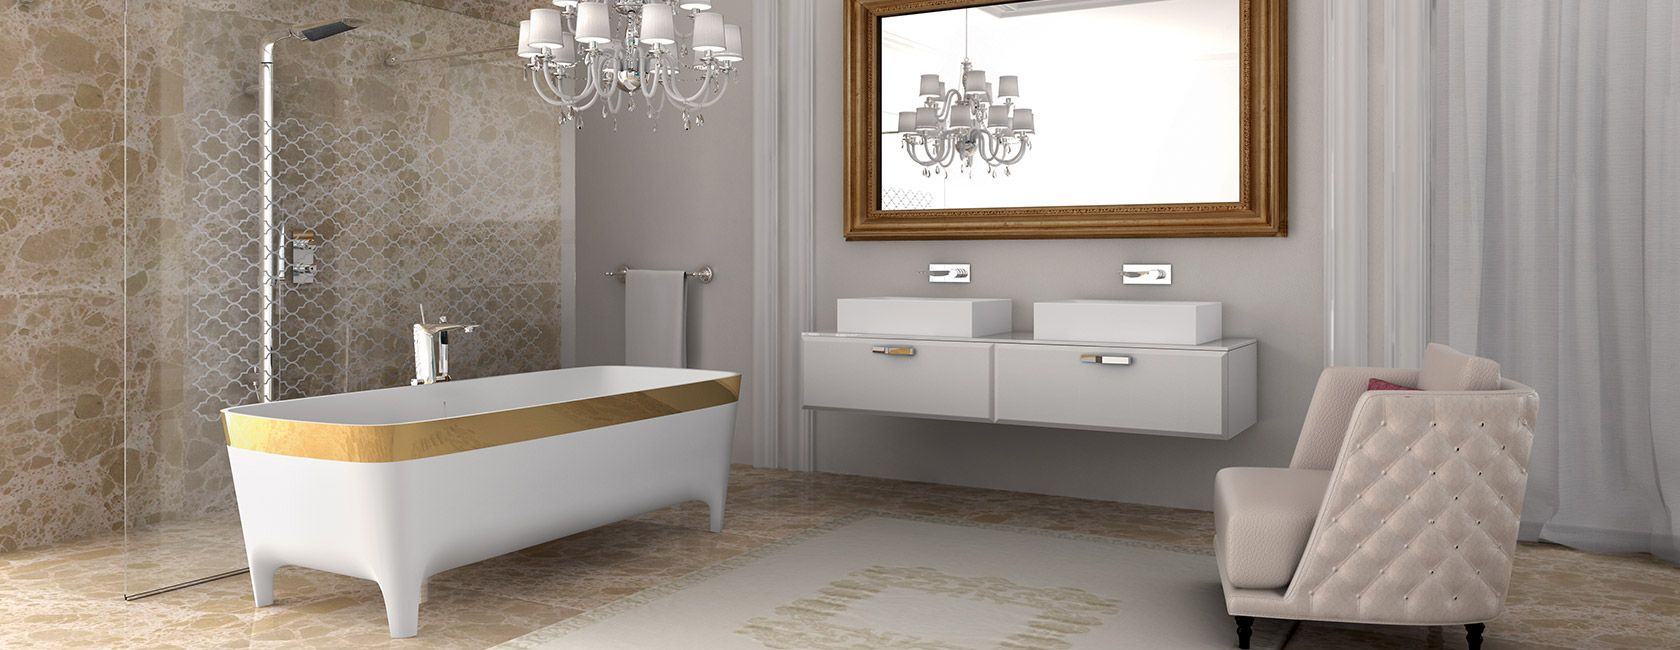 In every teuco bathtub appealing design is teamed with a focus on